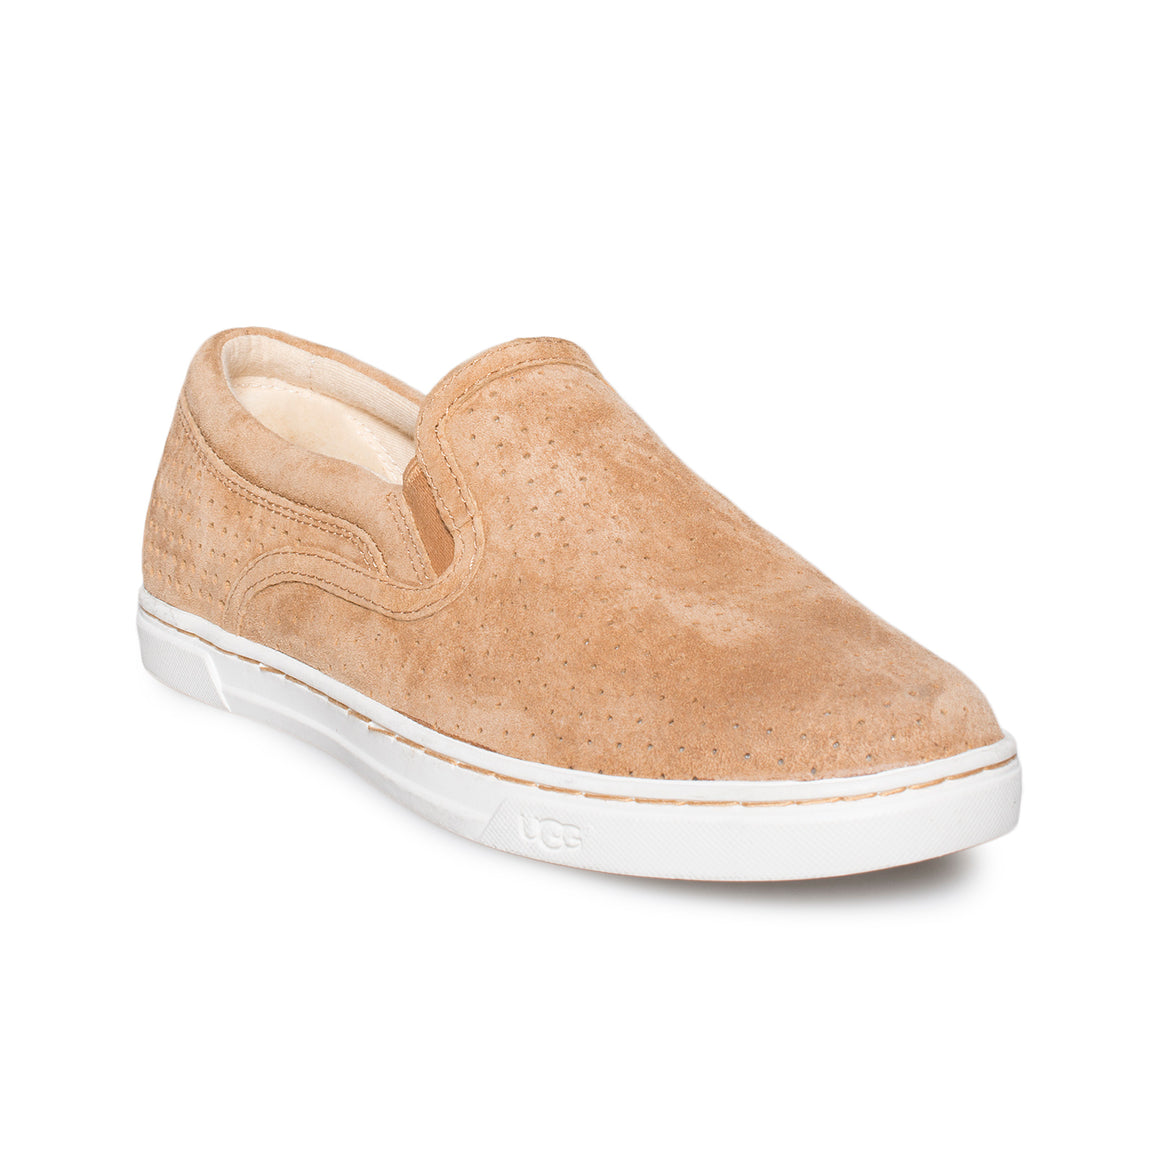 UGG Adley Perf Chestnut Shoes - Women's